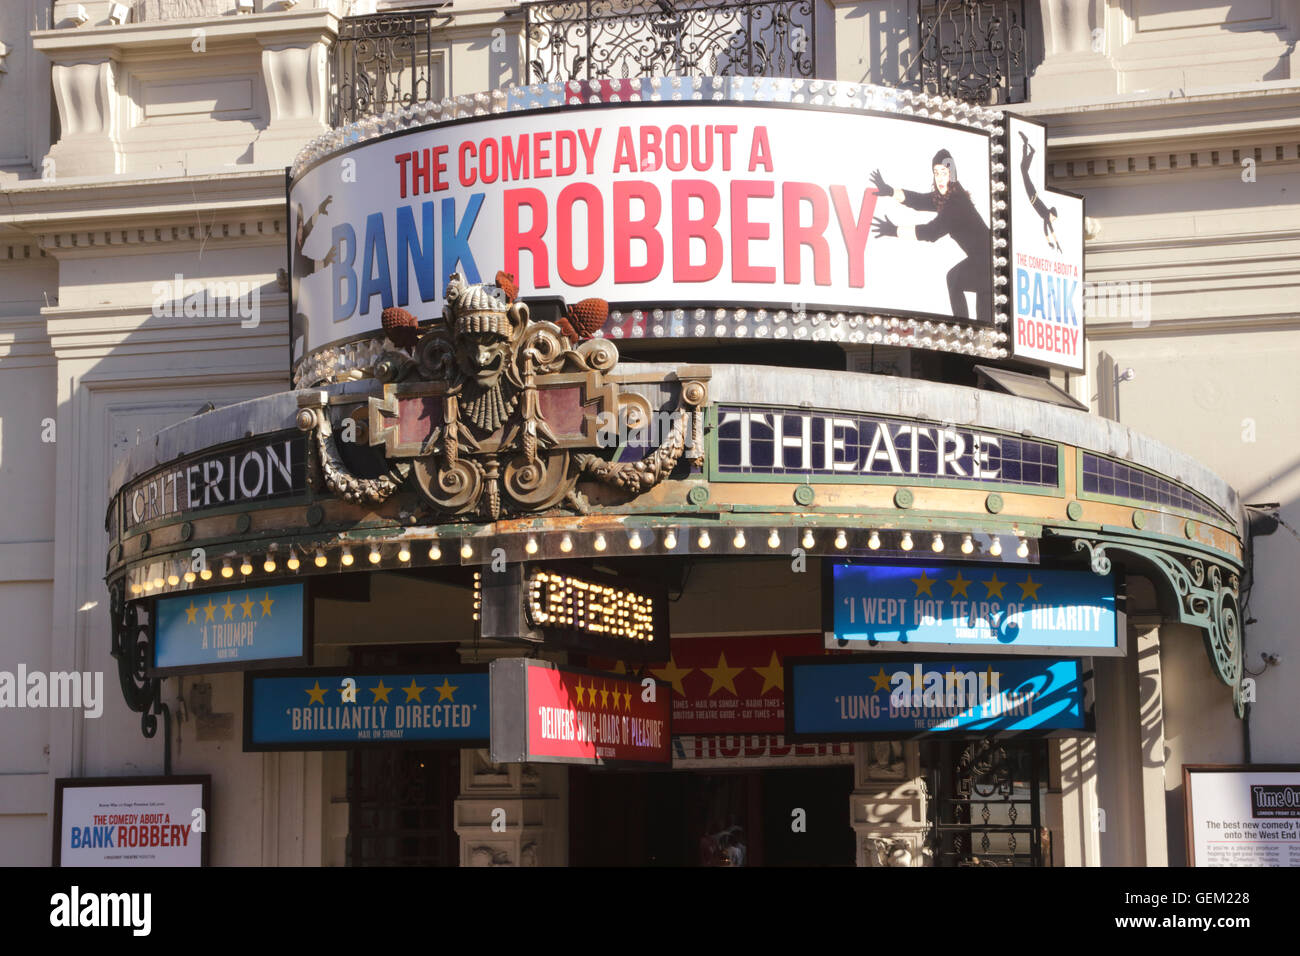 The Comedy About a Bank Robbery showing at the Criterion Theatre Piccadilly London July 2016 - Stock Image